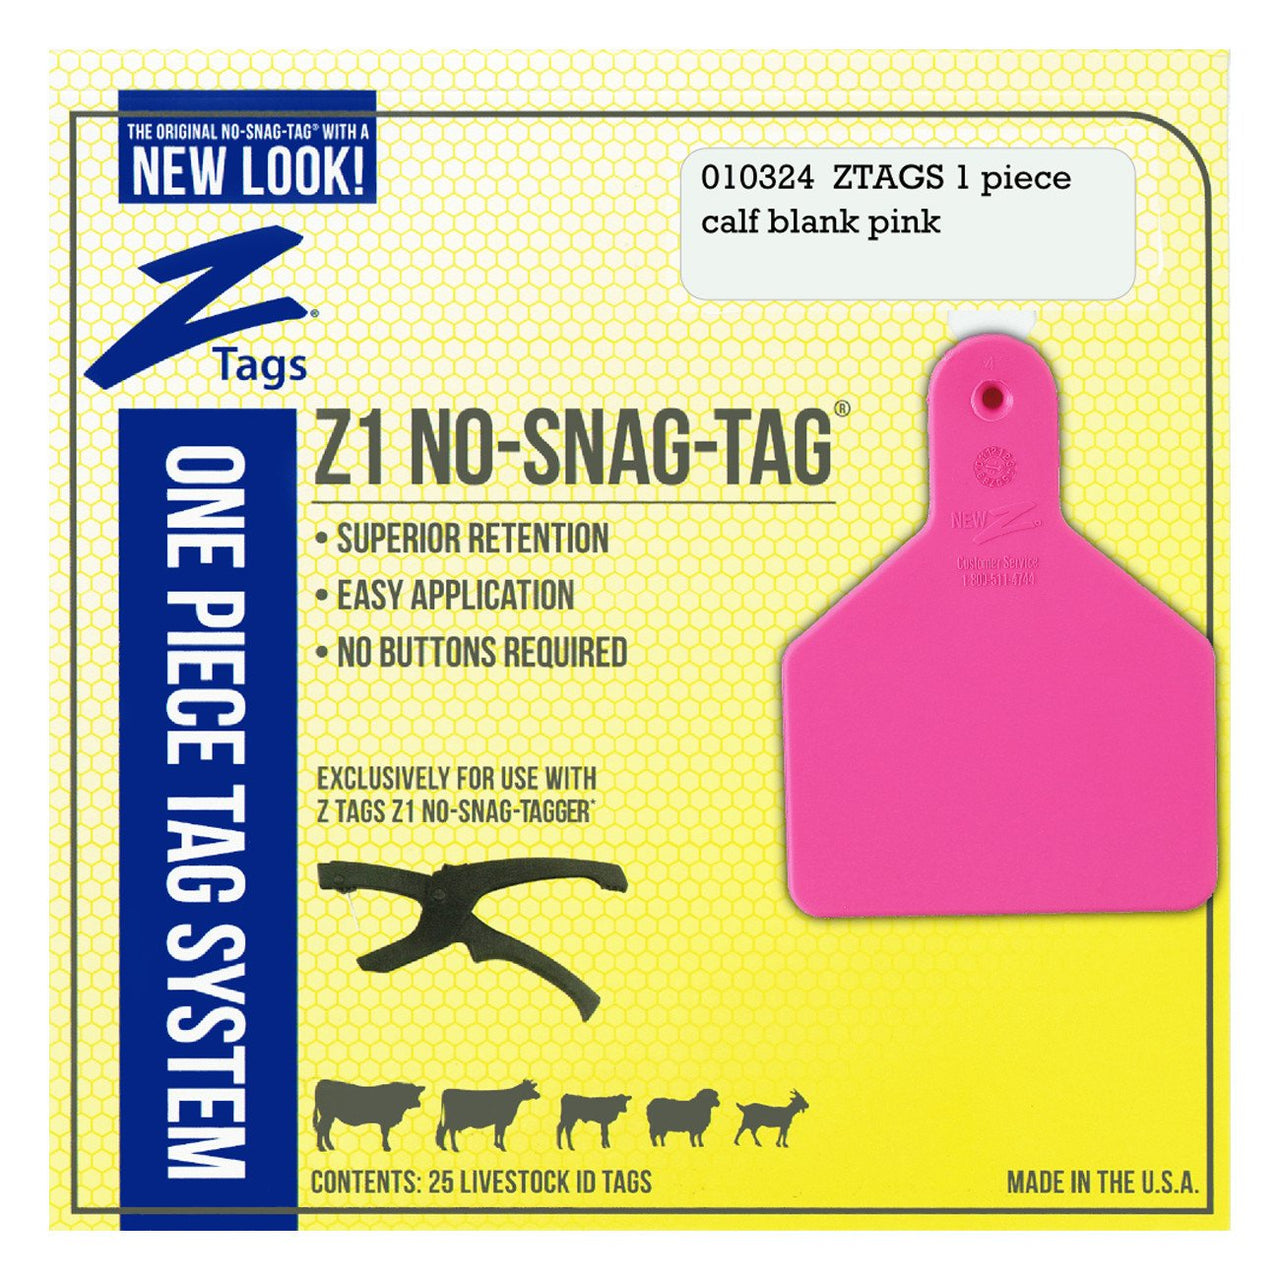 Z Tags 1 Piece Calf Blank (Pink) 25 Pack - 1 Piece Short Neck Calf Blank Tag Z Tags - Canada